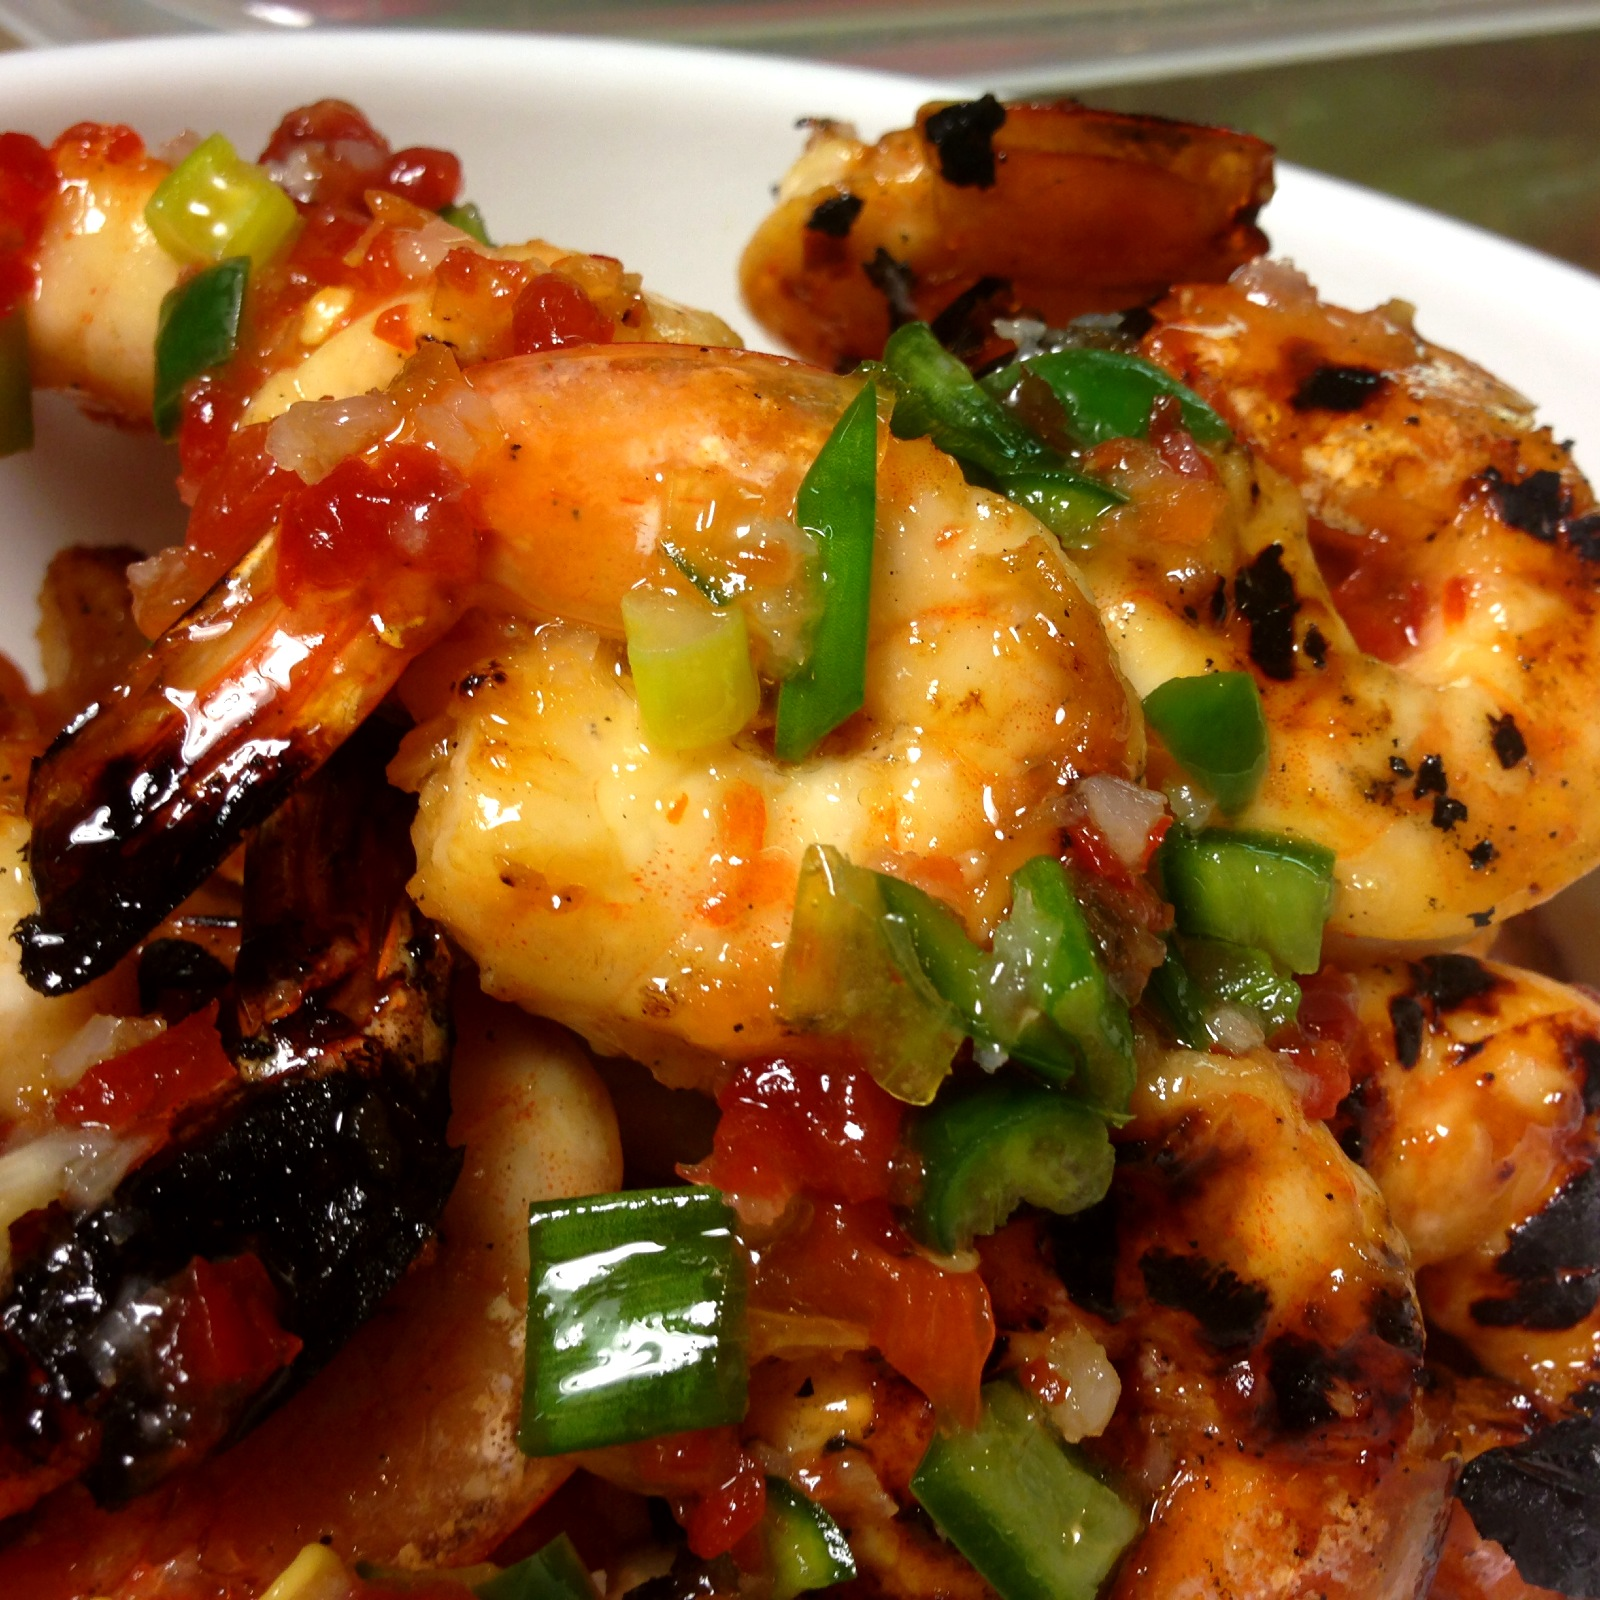 Chili-Lime-Brandy Grilled Shrimp Recipes — Dishmaps